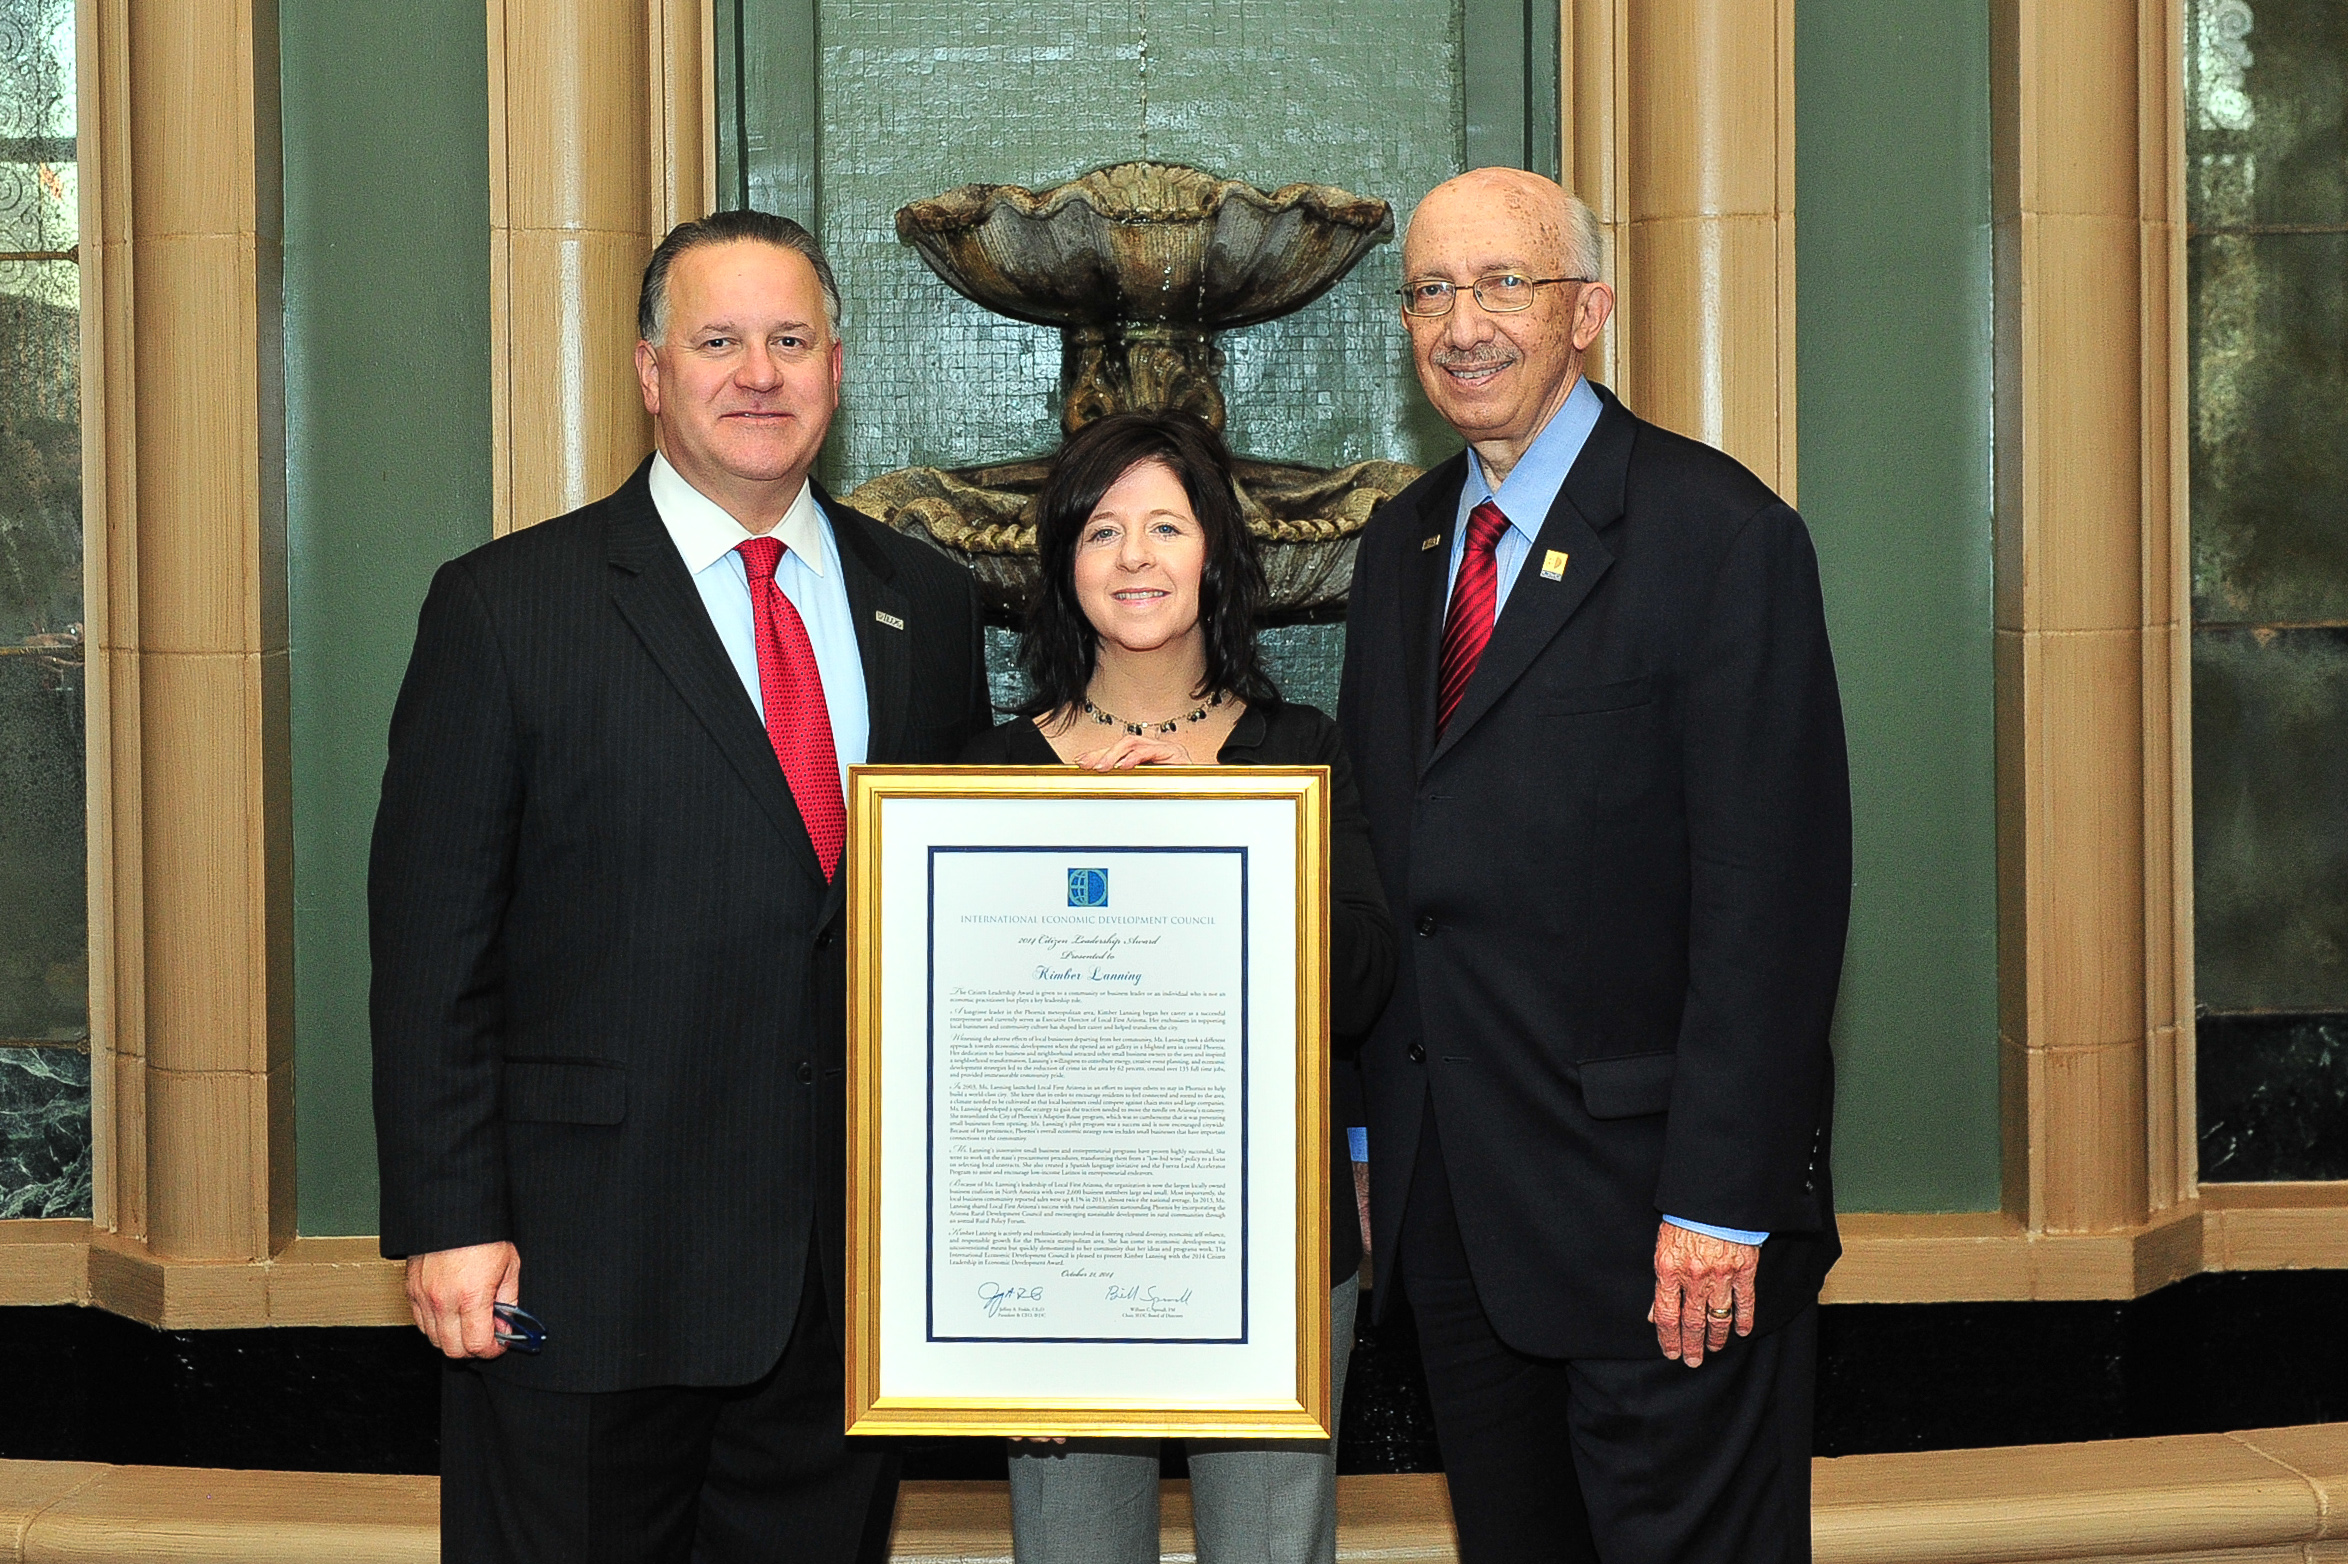 Kimber was named Citizen Leader of the Year by the International Economic Development Council in 2014.